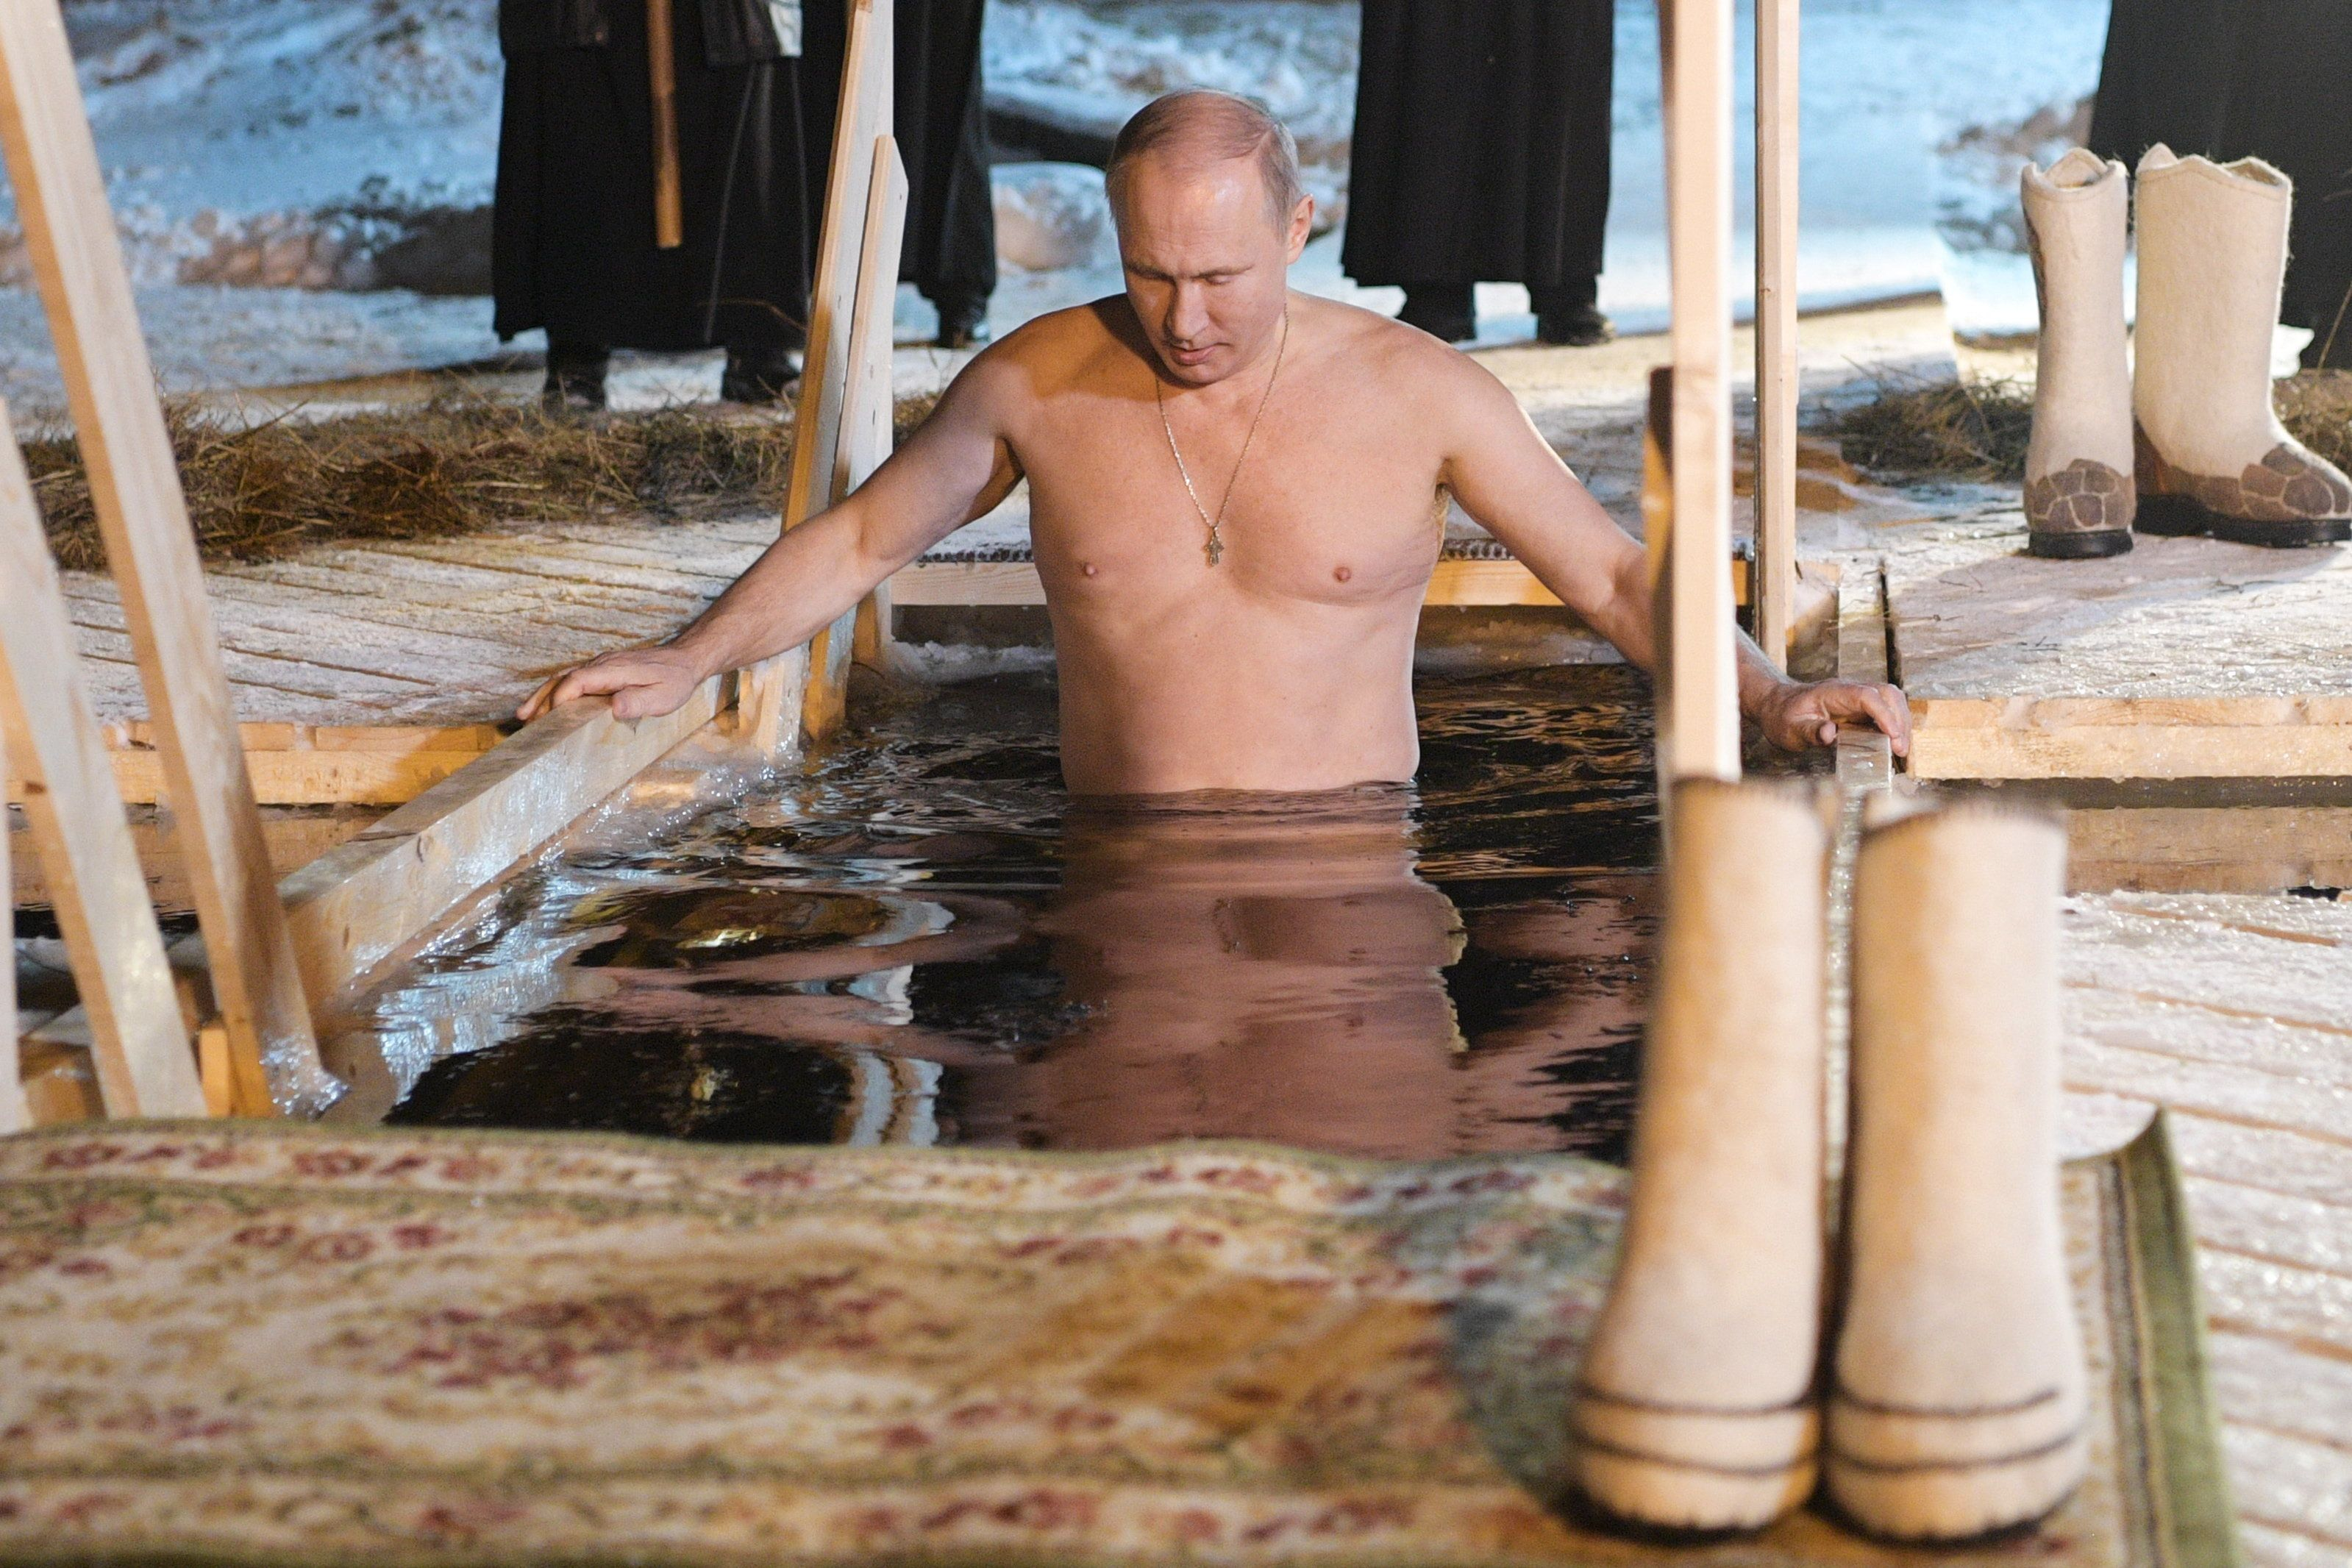 Vladimir Putin Strips For Ice-Cold Dip During Religious